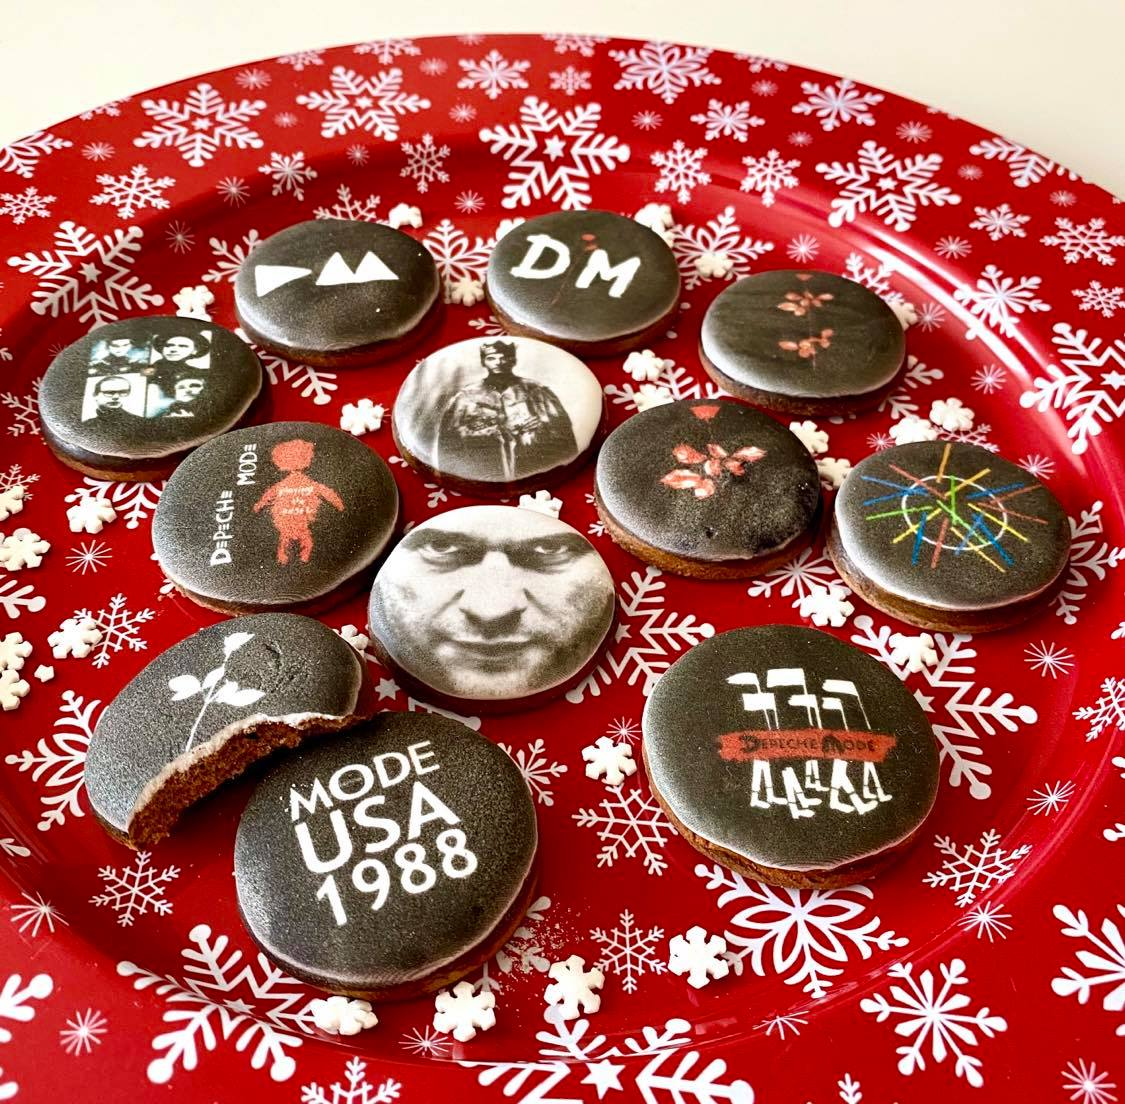 Depeche Mode Christmas gingerbread